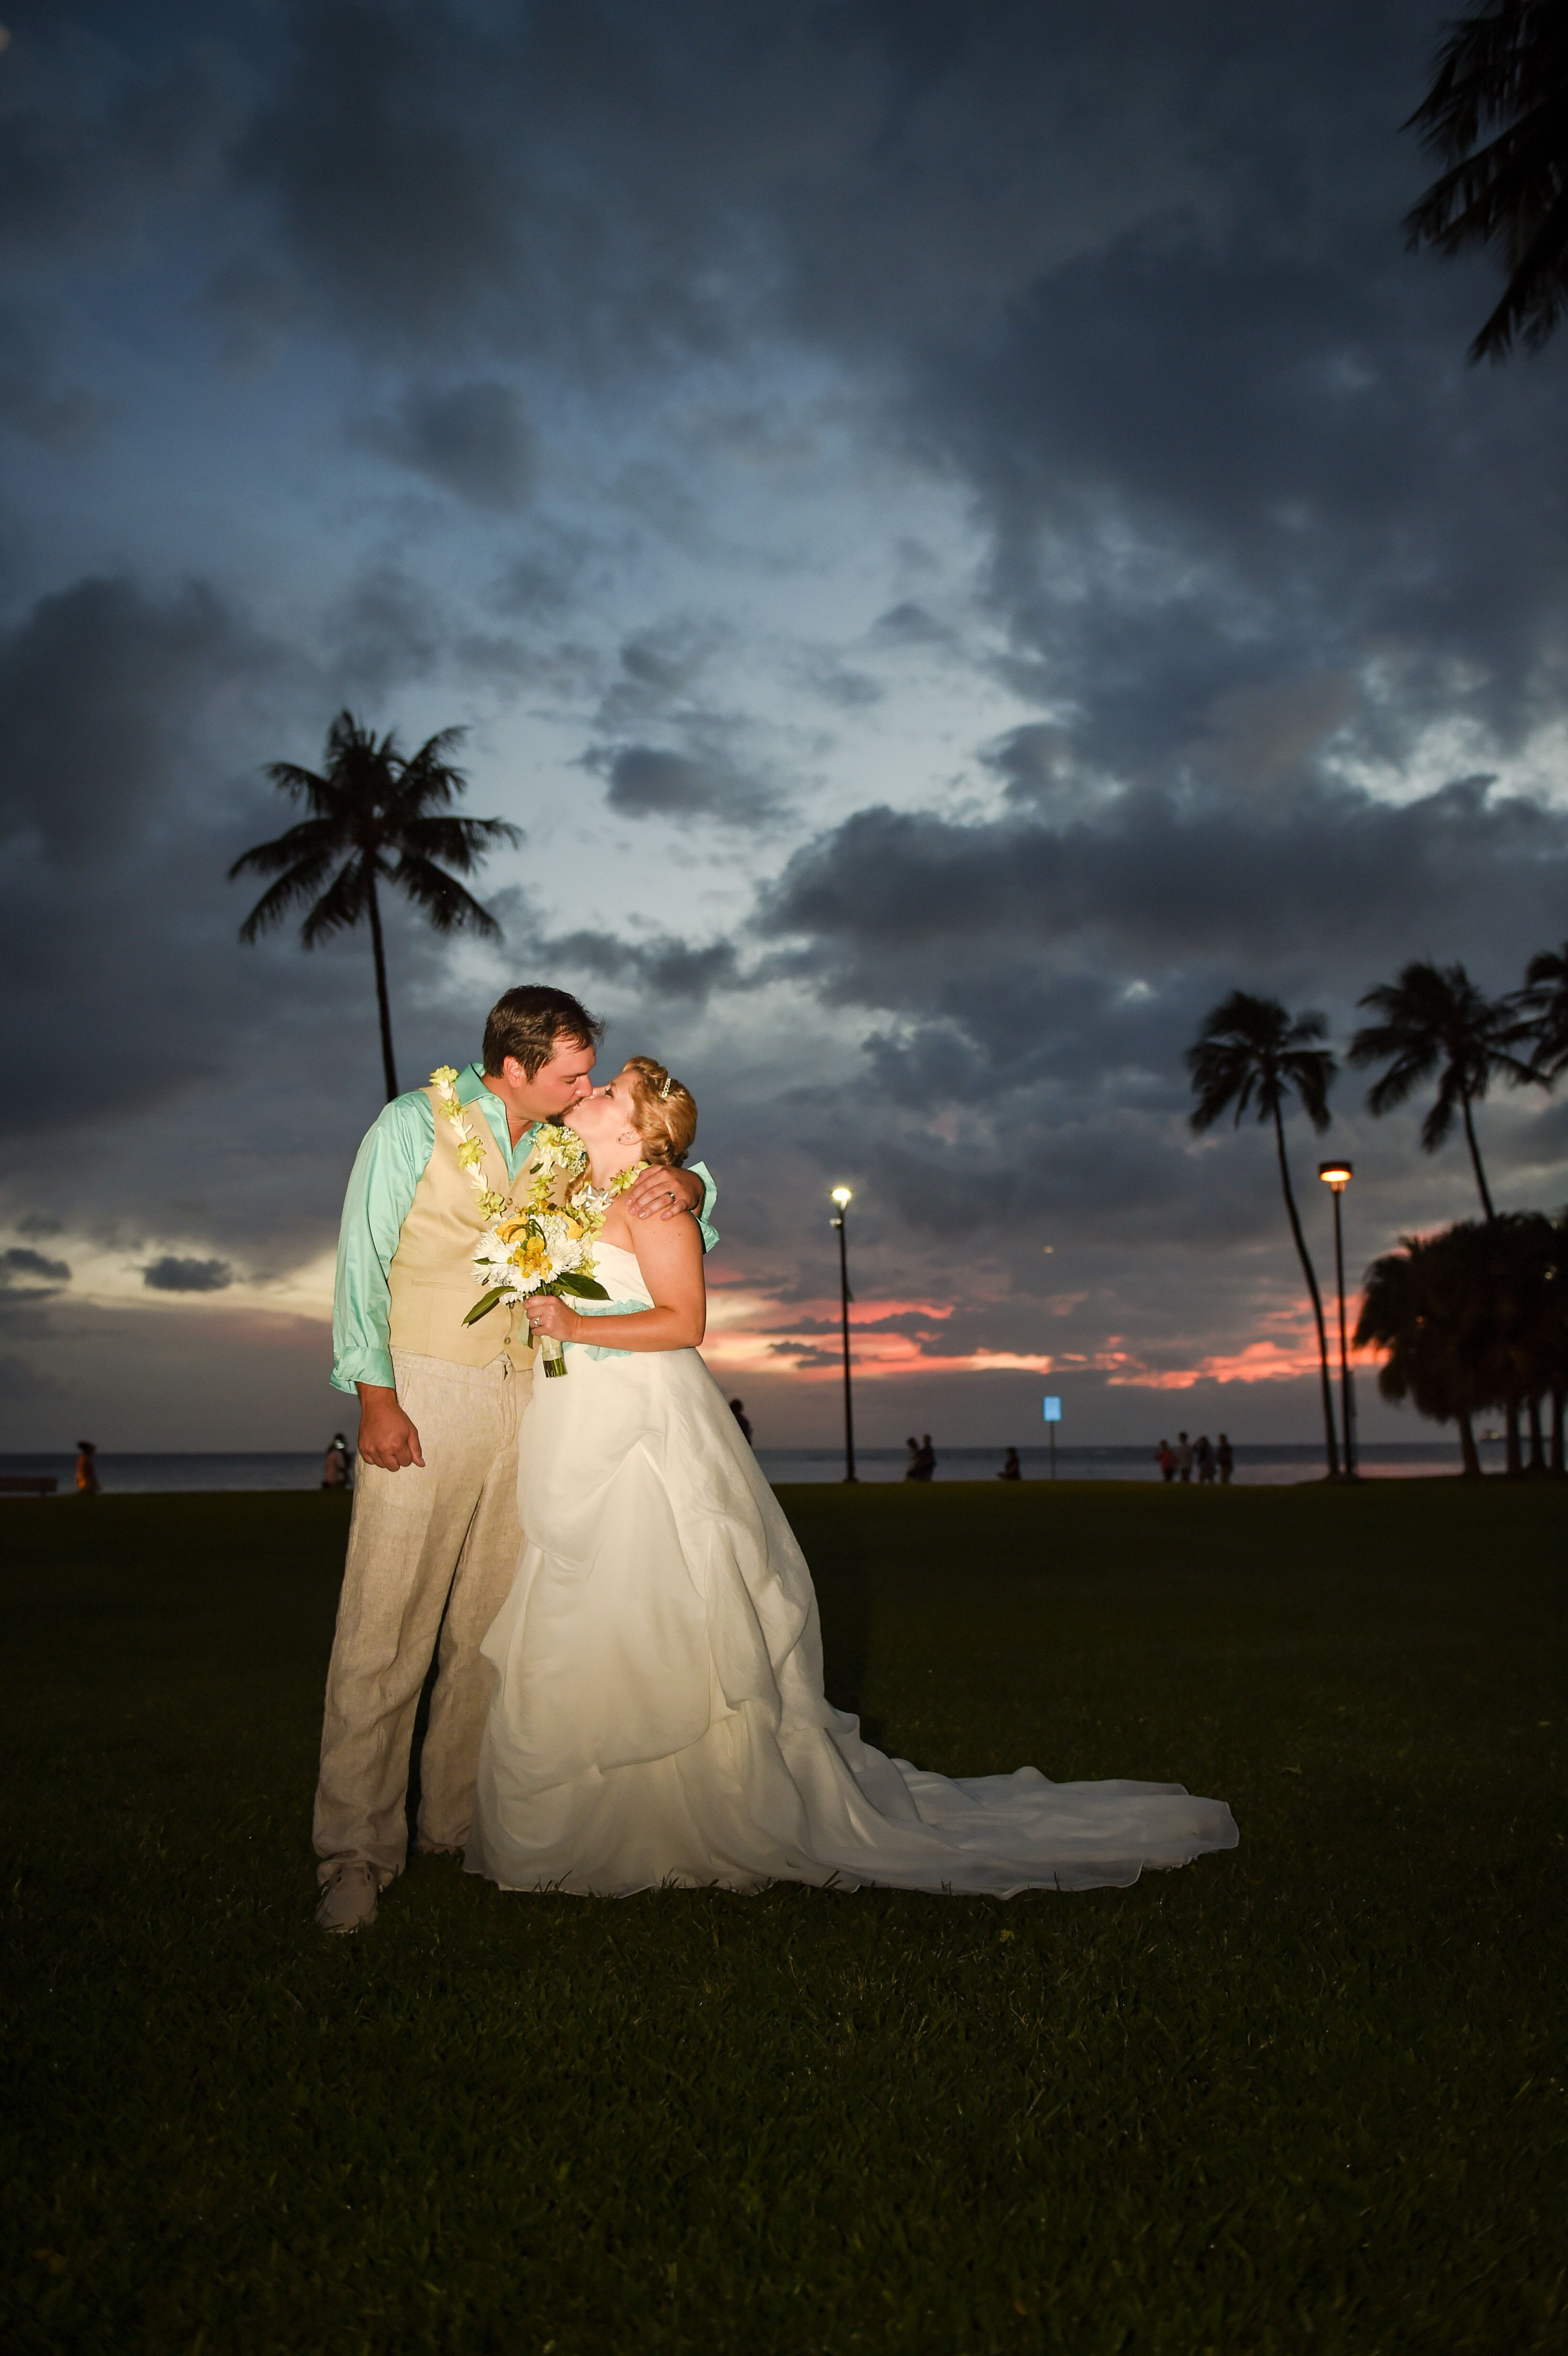 Sunset wedding in the park at Fort DeRussy Beach.